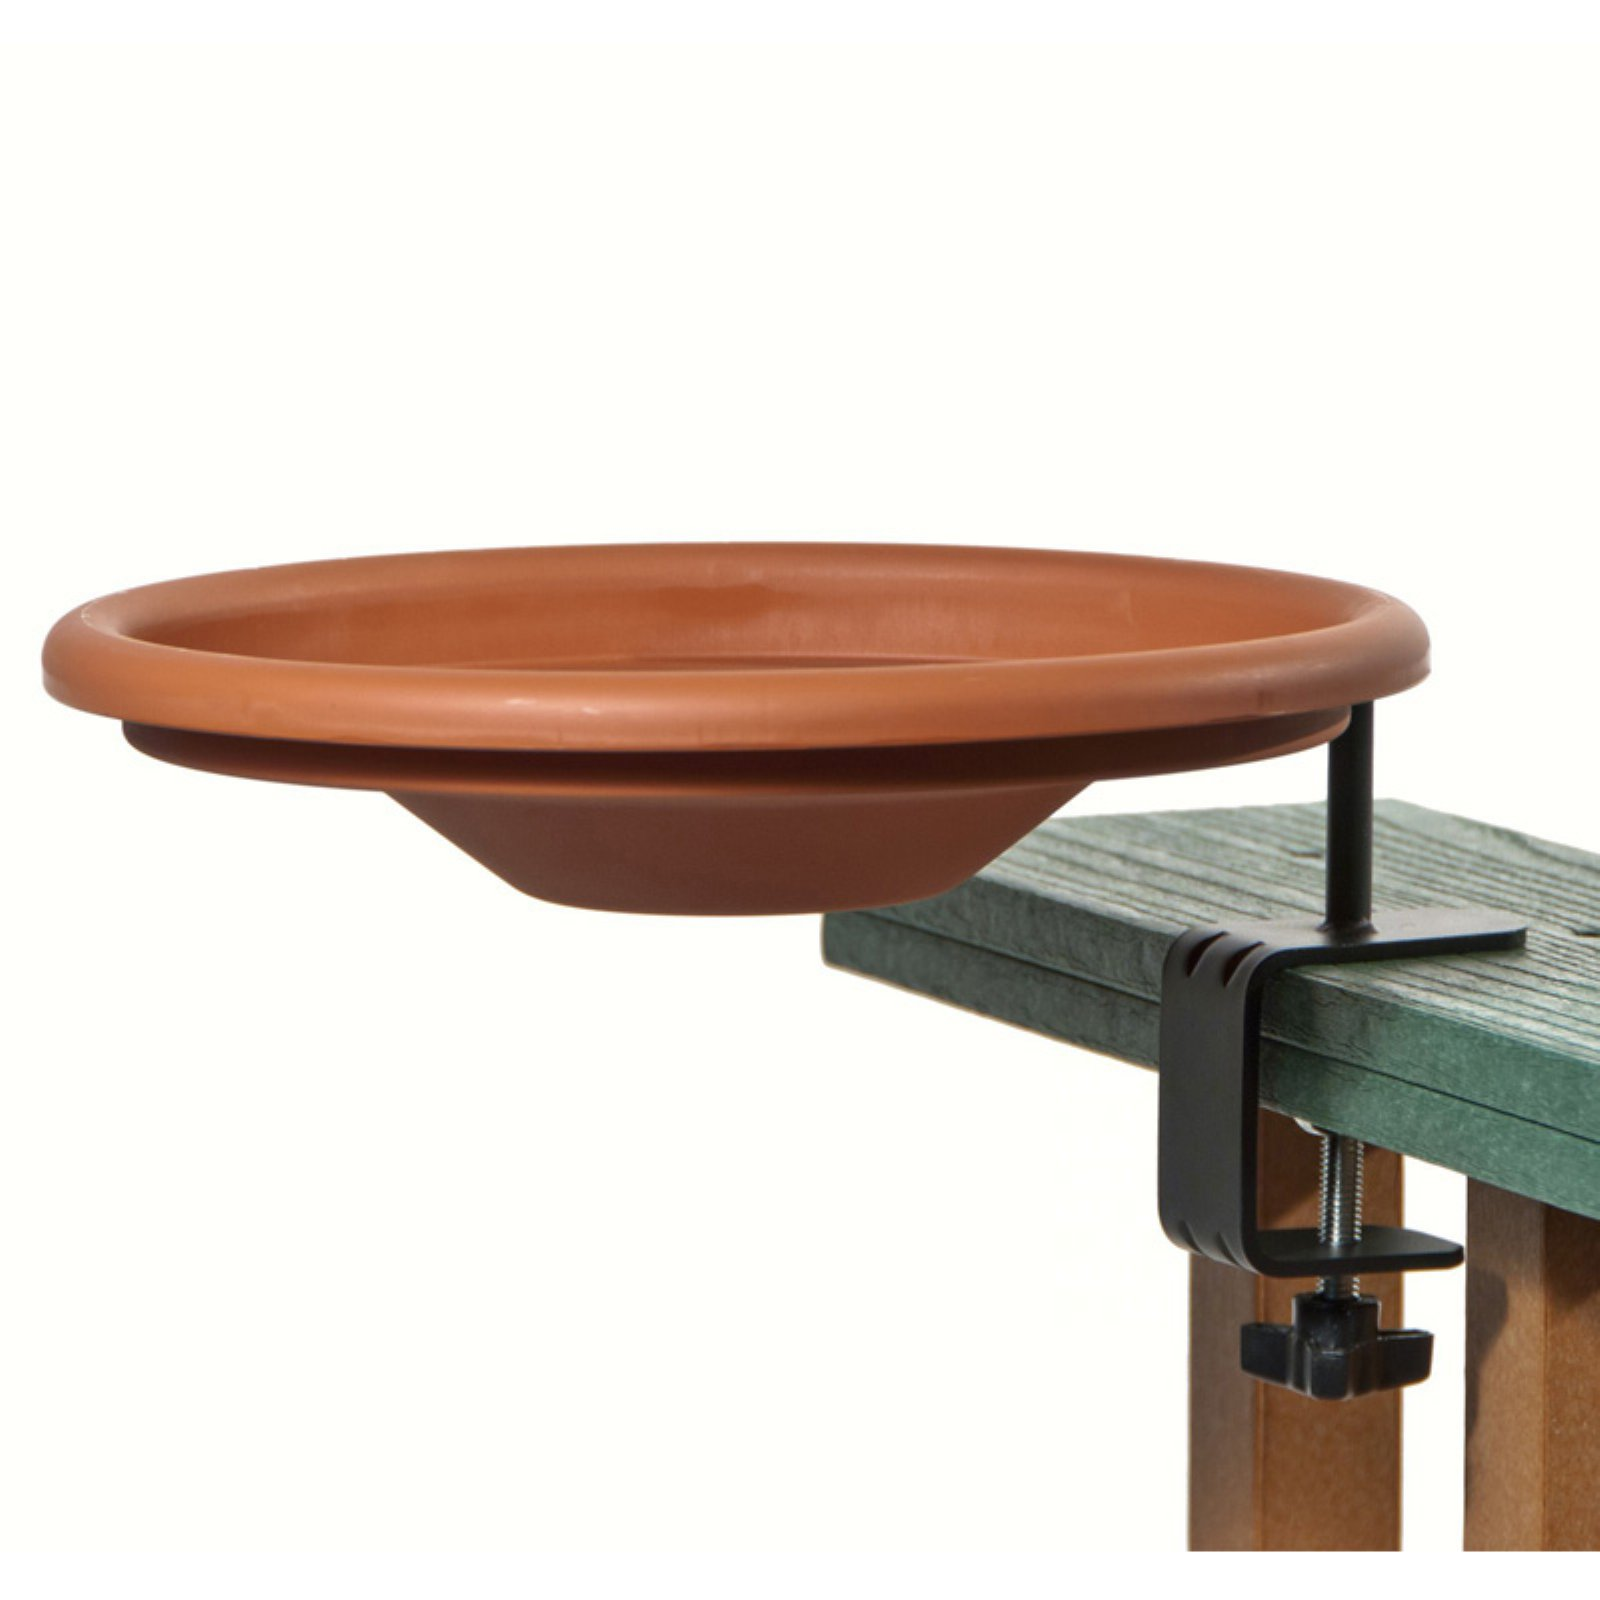 Wood Link Deck Mount Birdbath by Kay Home Products (Heritage Farms)